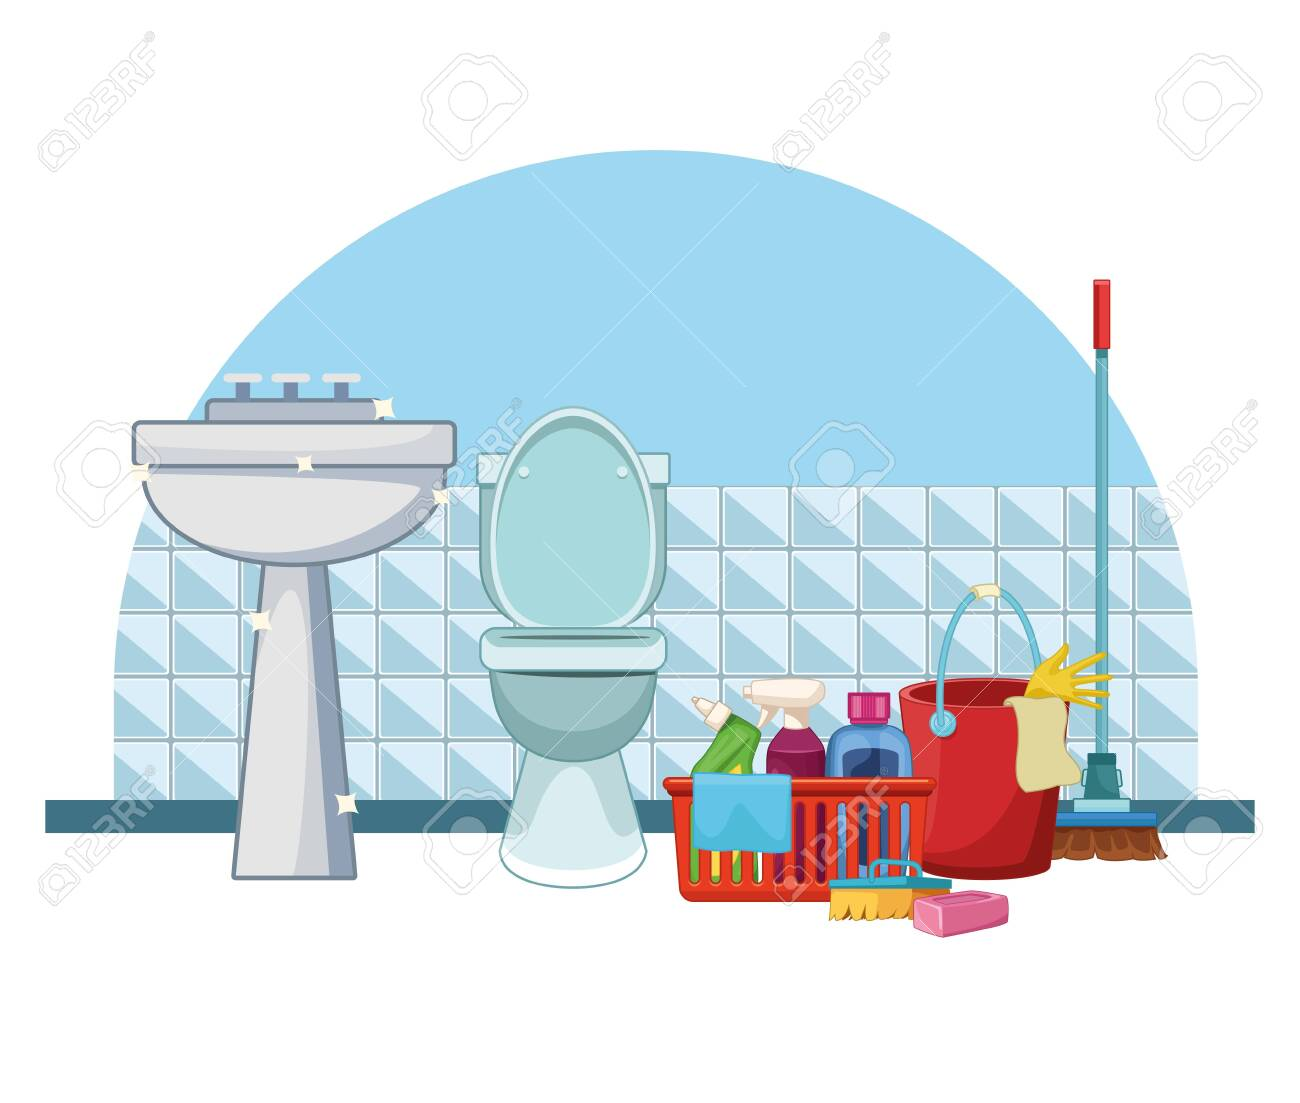 Housekeeping Cleaning Bathroom Products Bucket Supplies With Royalty Free Cliparts Vectors And Stock Illustration Image 124377733